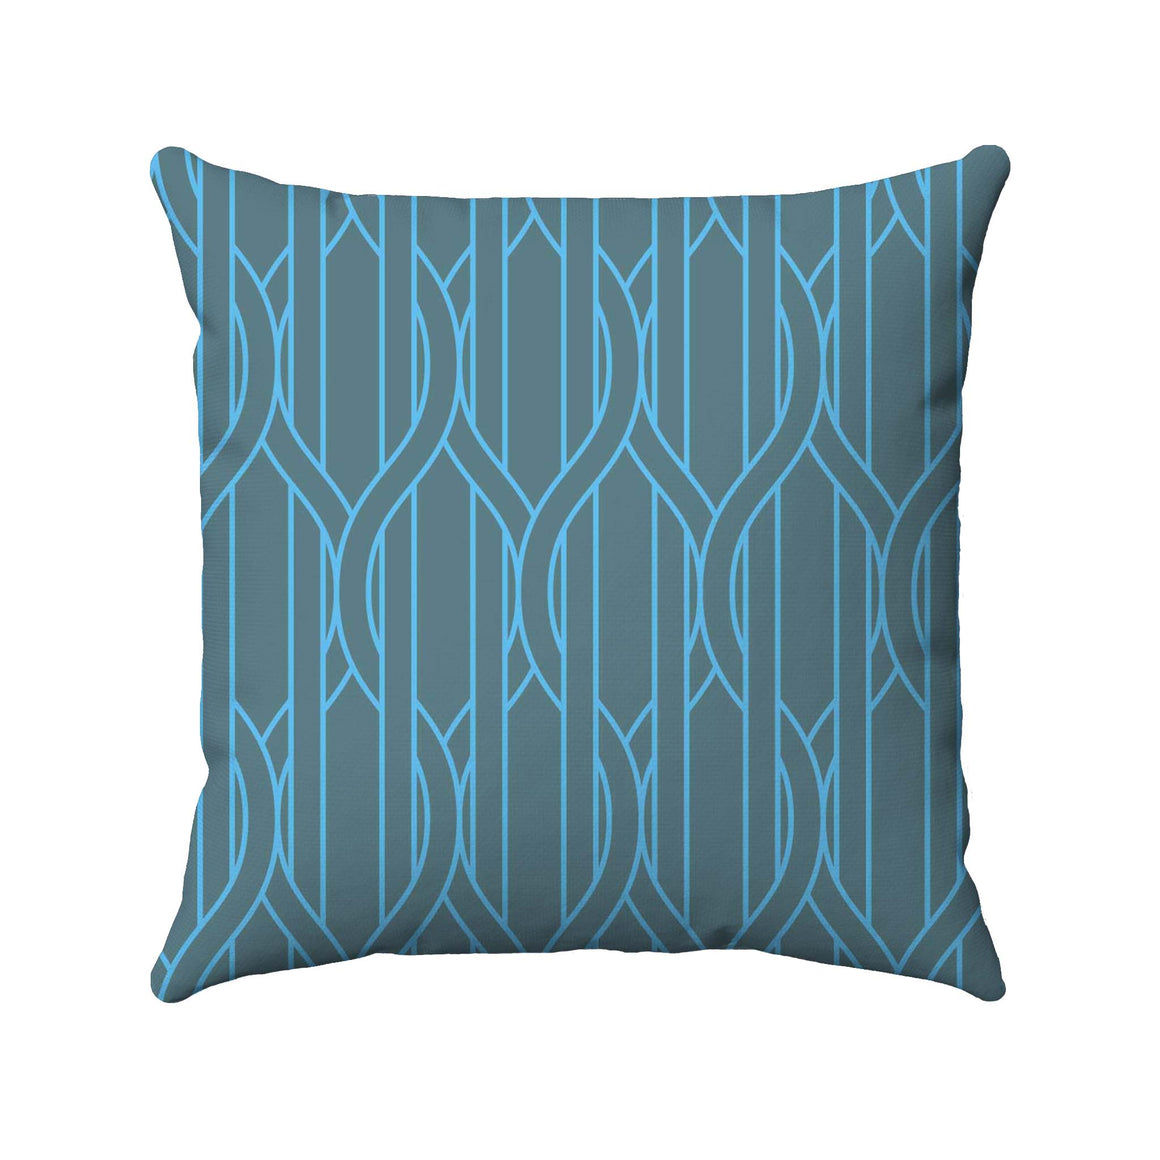 Two different shades of blue straight and ogee lines are used in this 2-color design to portray vertical stripes with wire-like lines wrapping in and around the stripes.